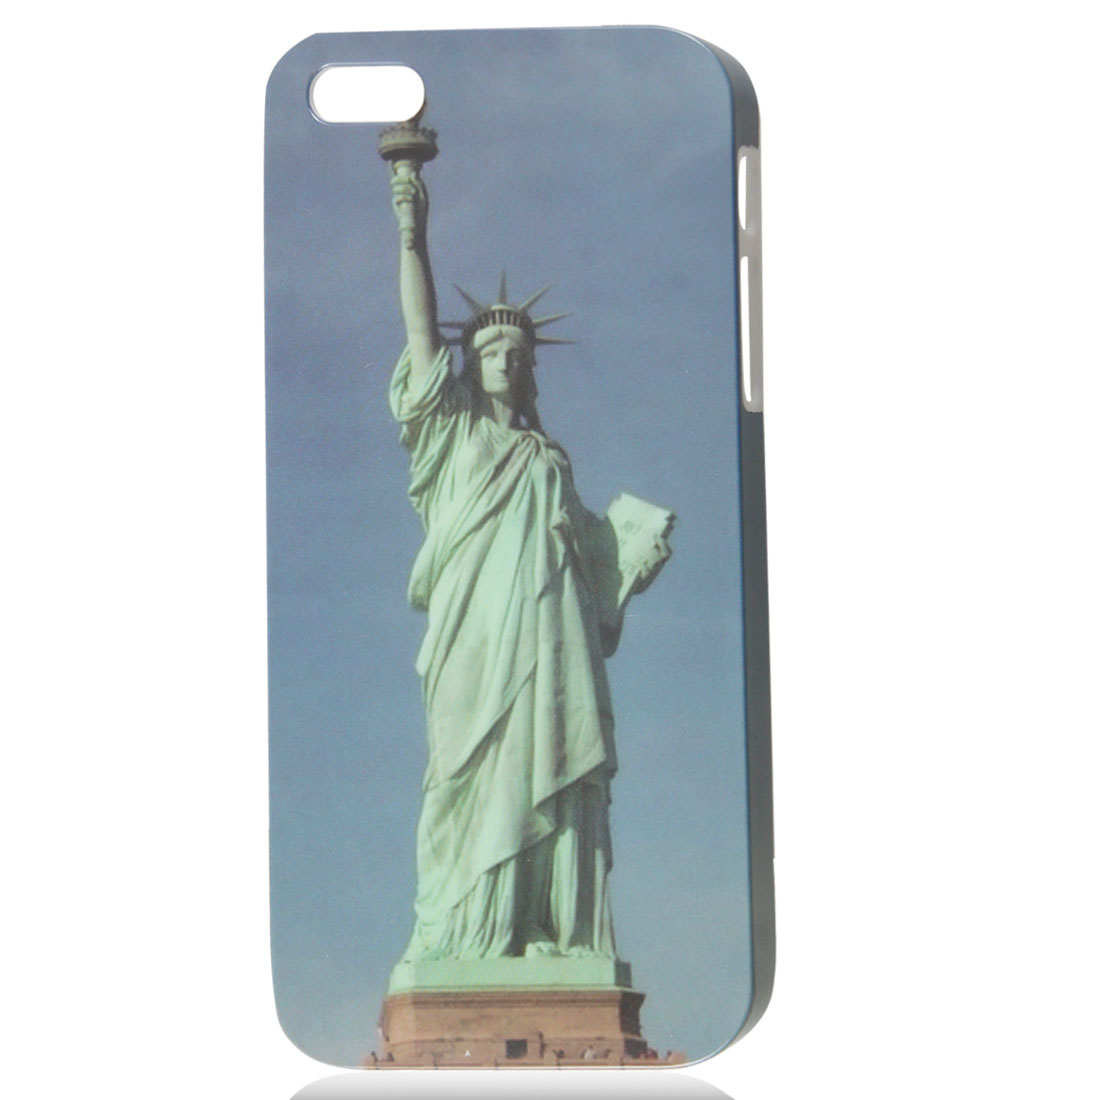 Retro Style Statue of Liberty IMD Hard Back Case Cover Skin for iPhone 5 5G